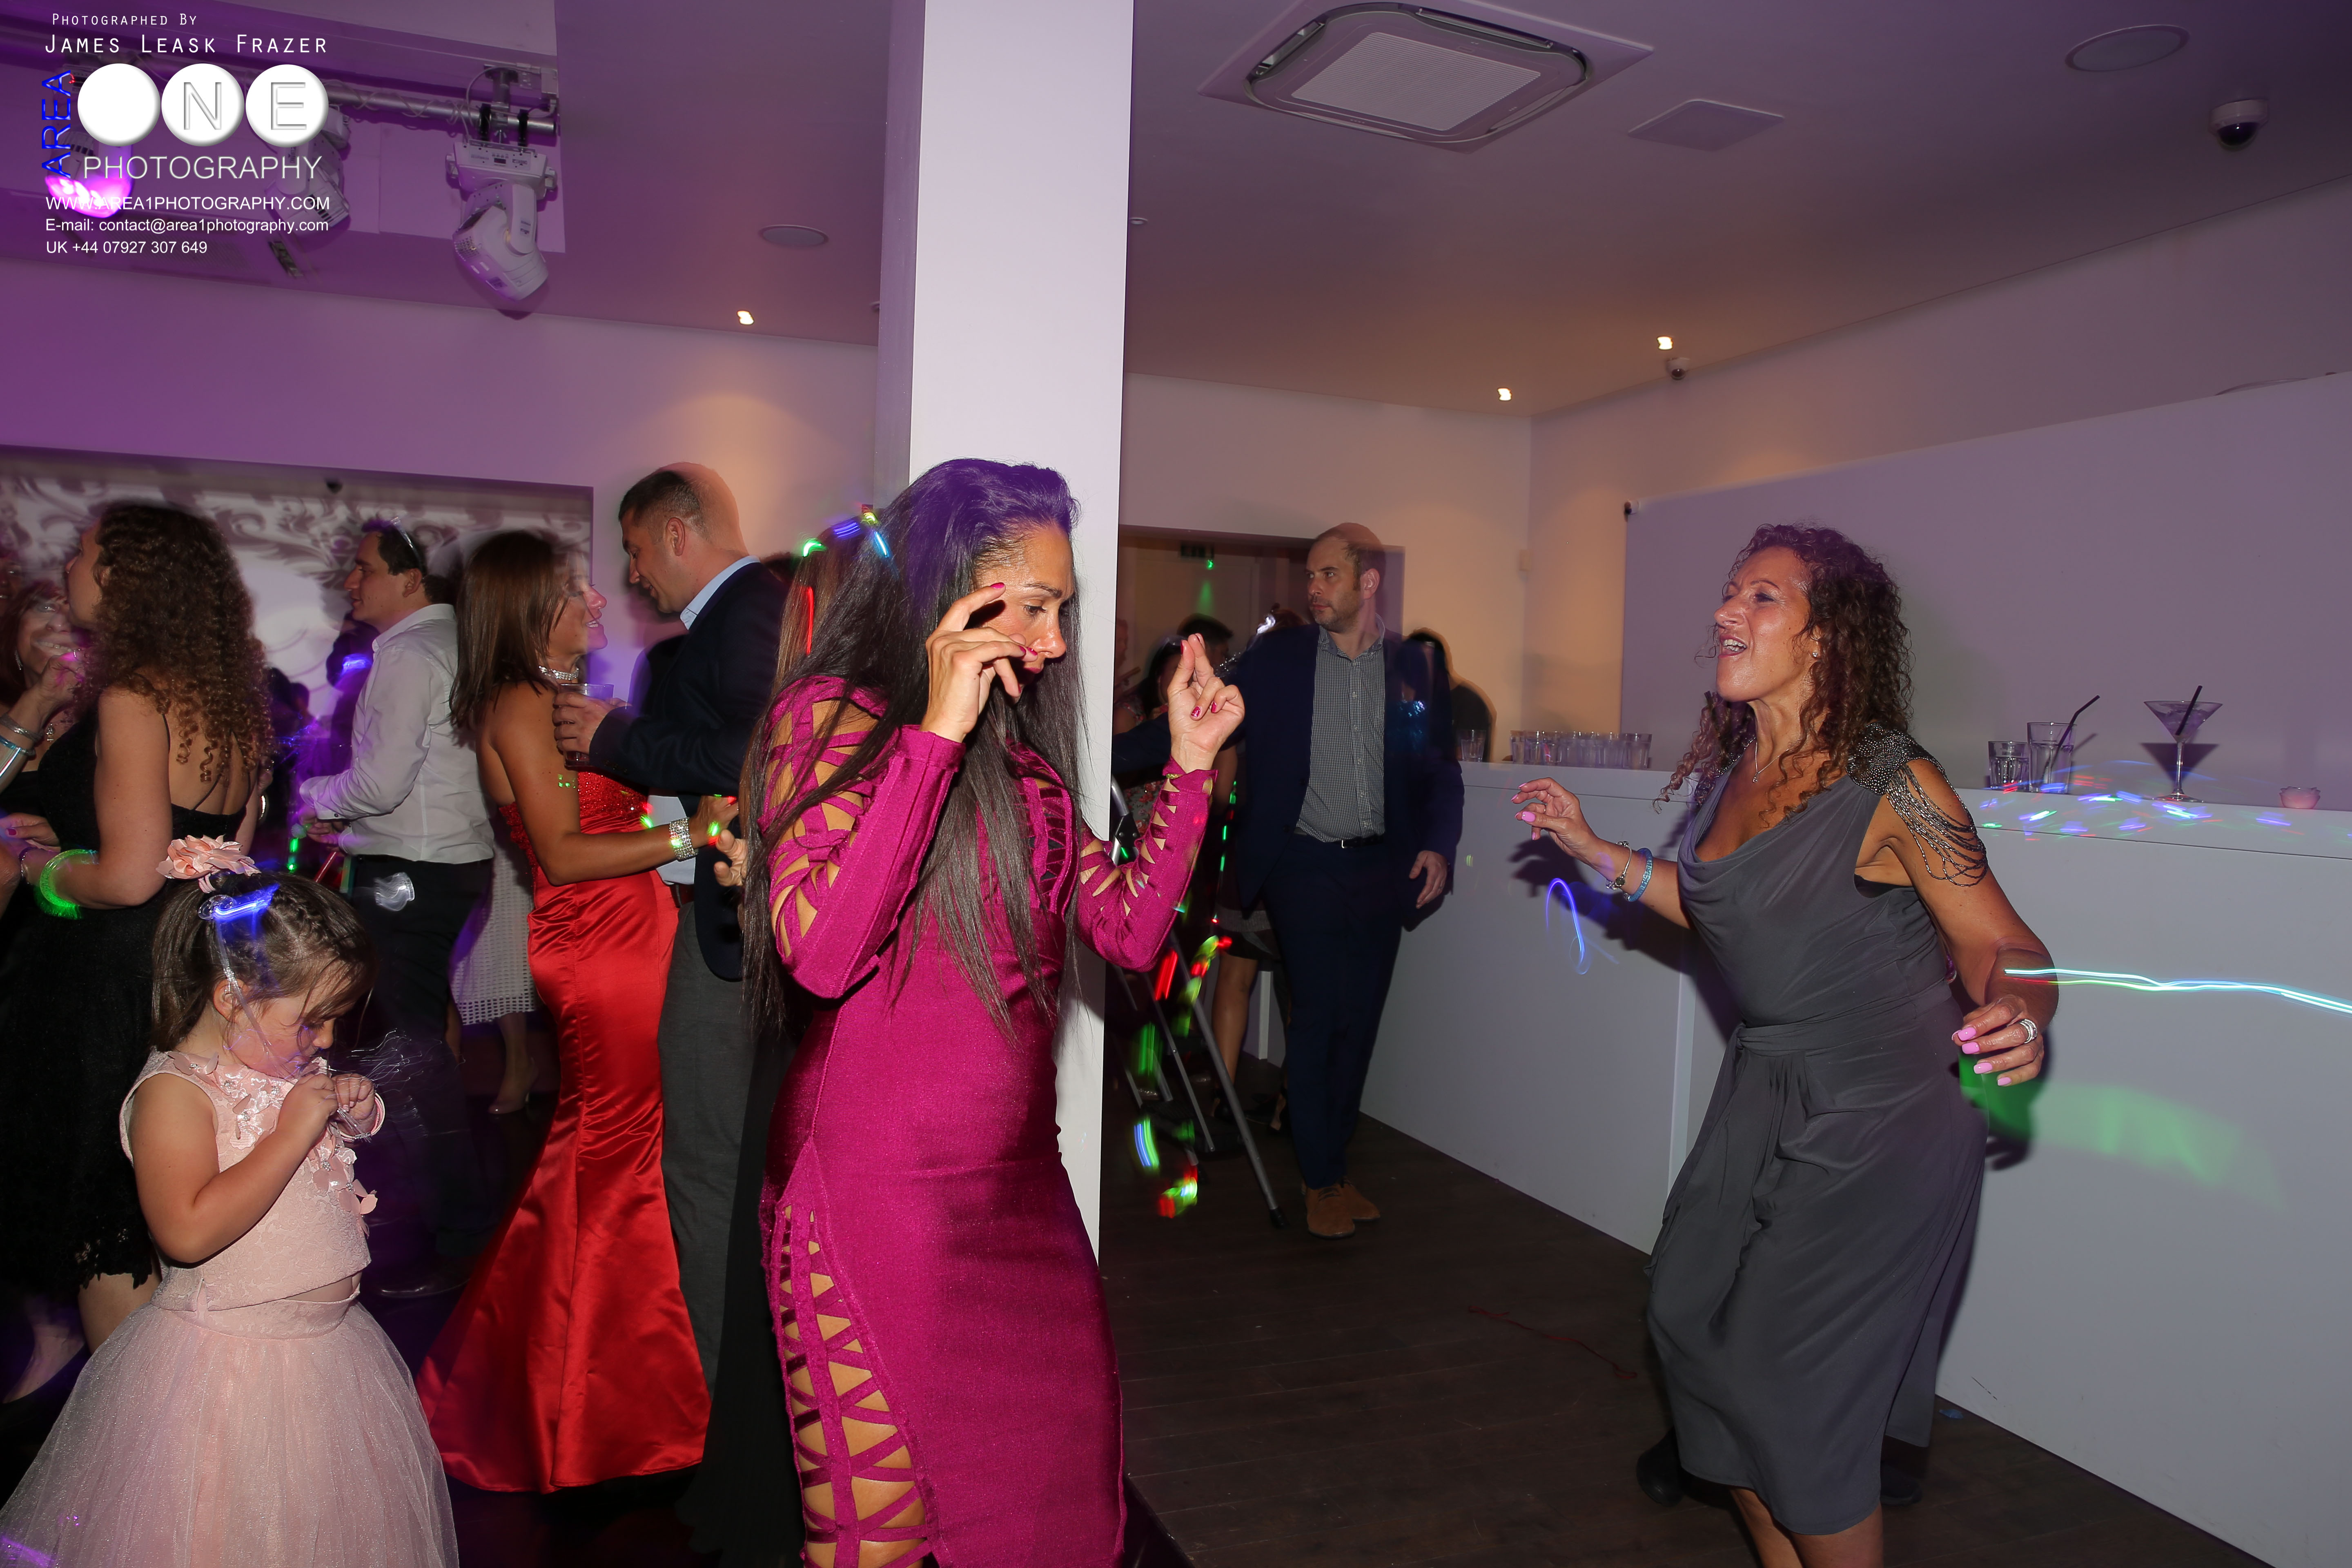 area1photography - contact James on 07927 307 649 - File No-8